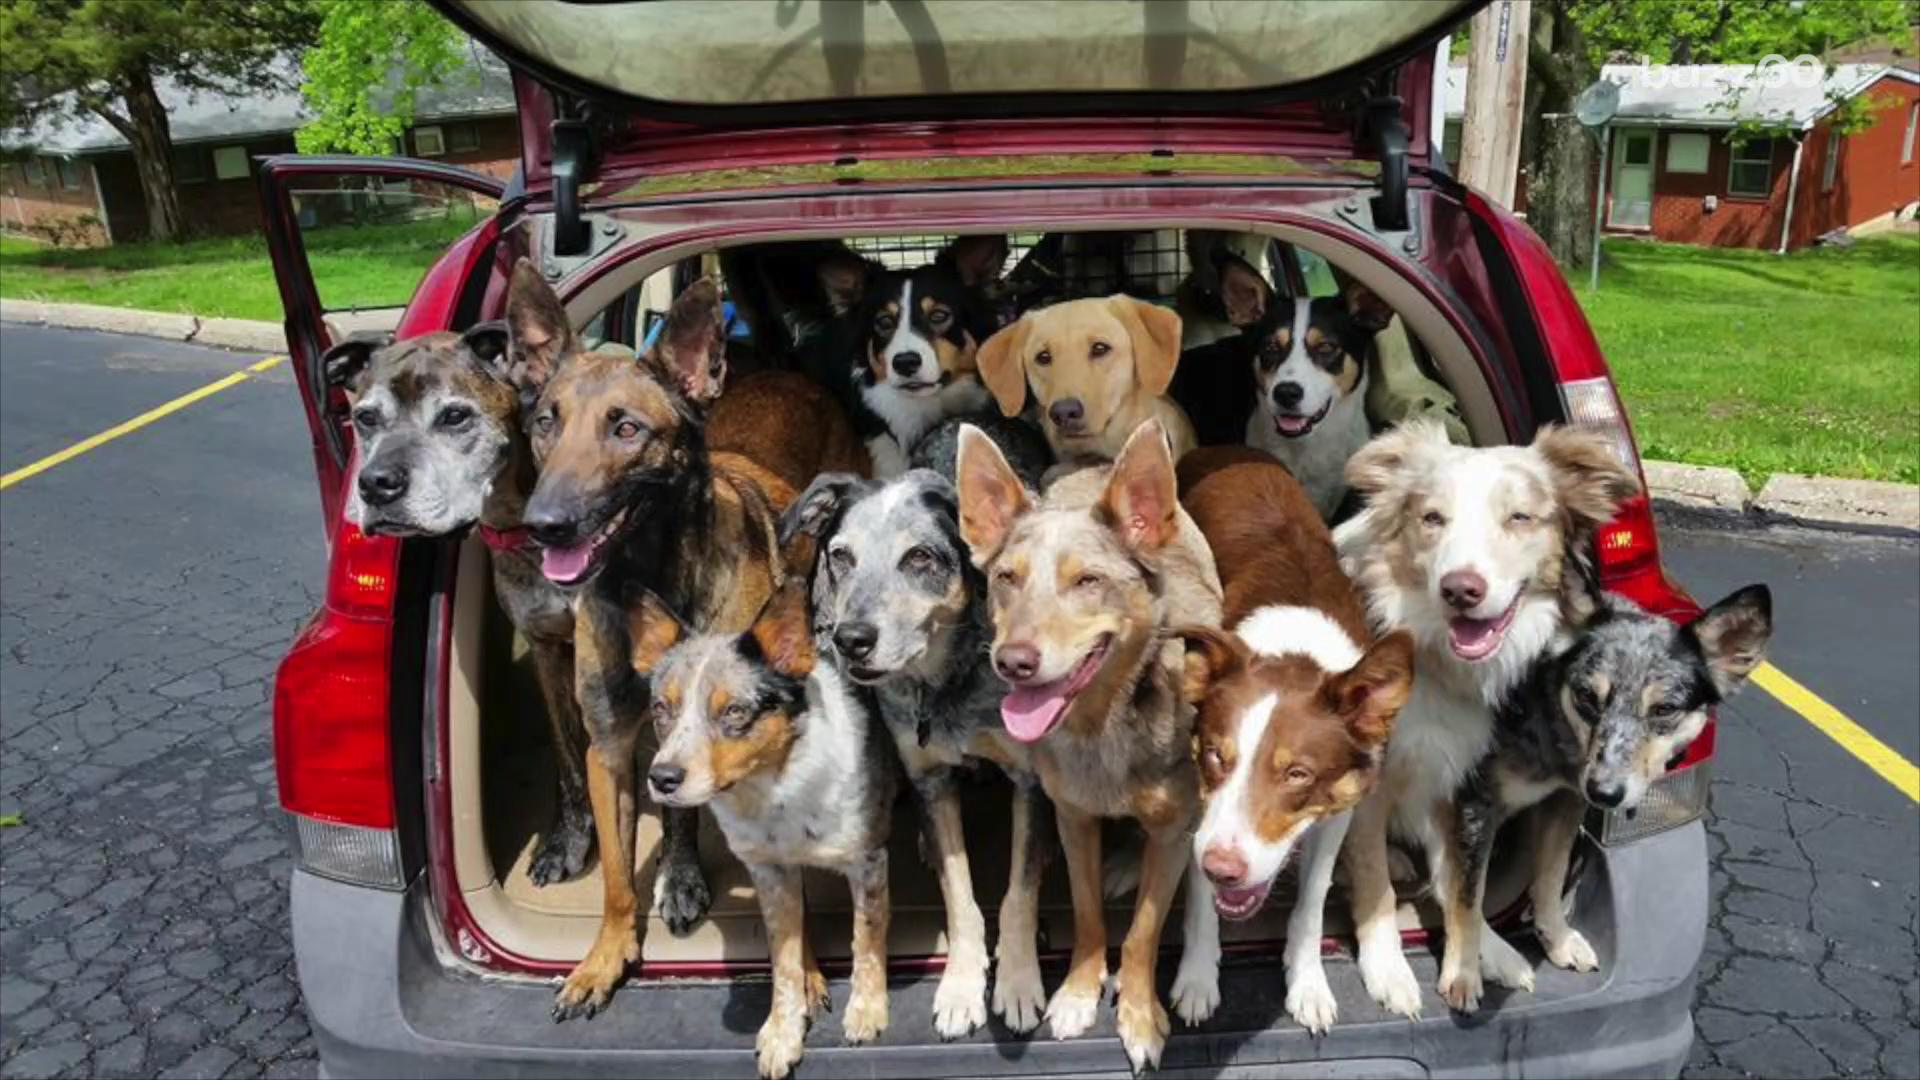 Cops called after car packed with 20 dogs spotted